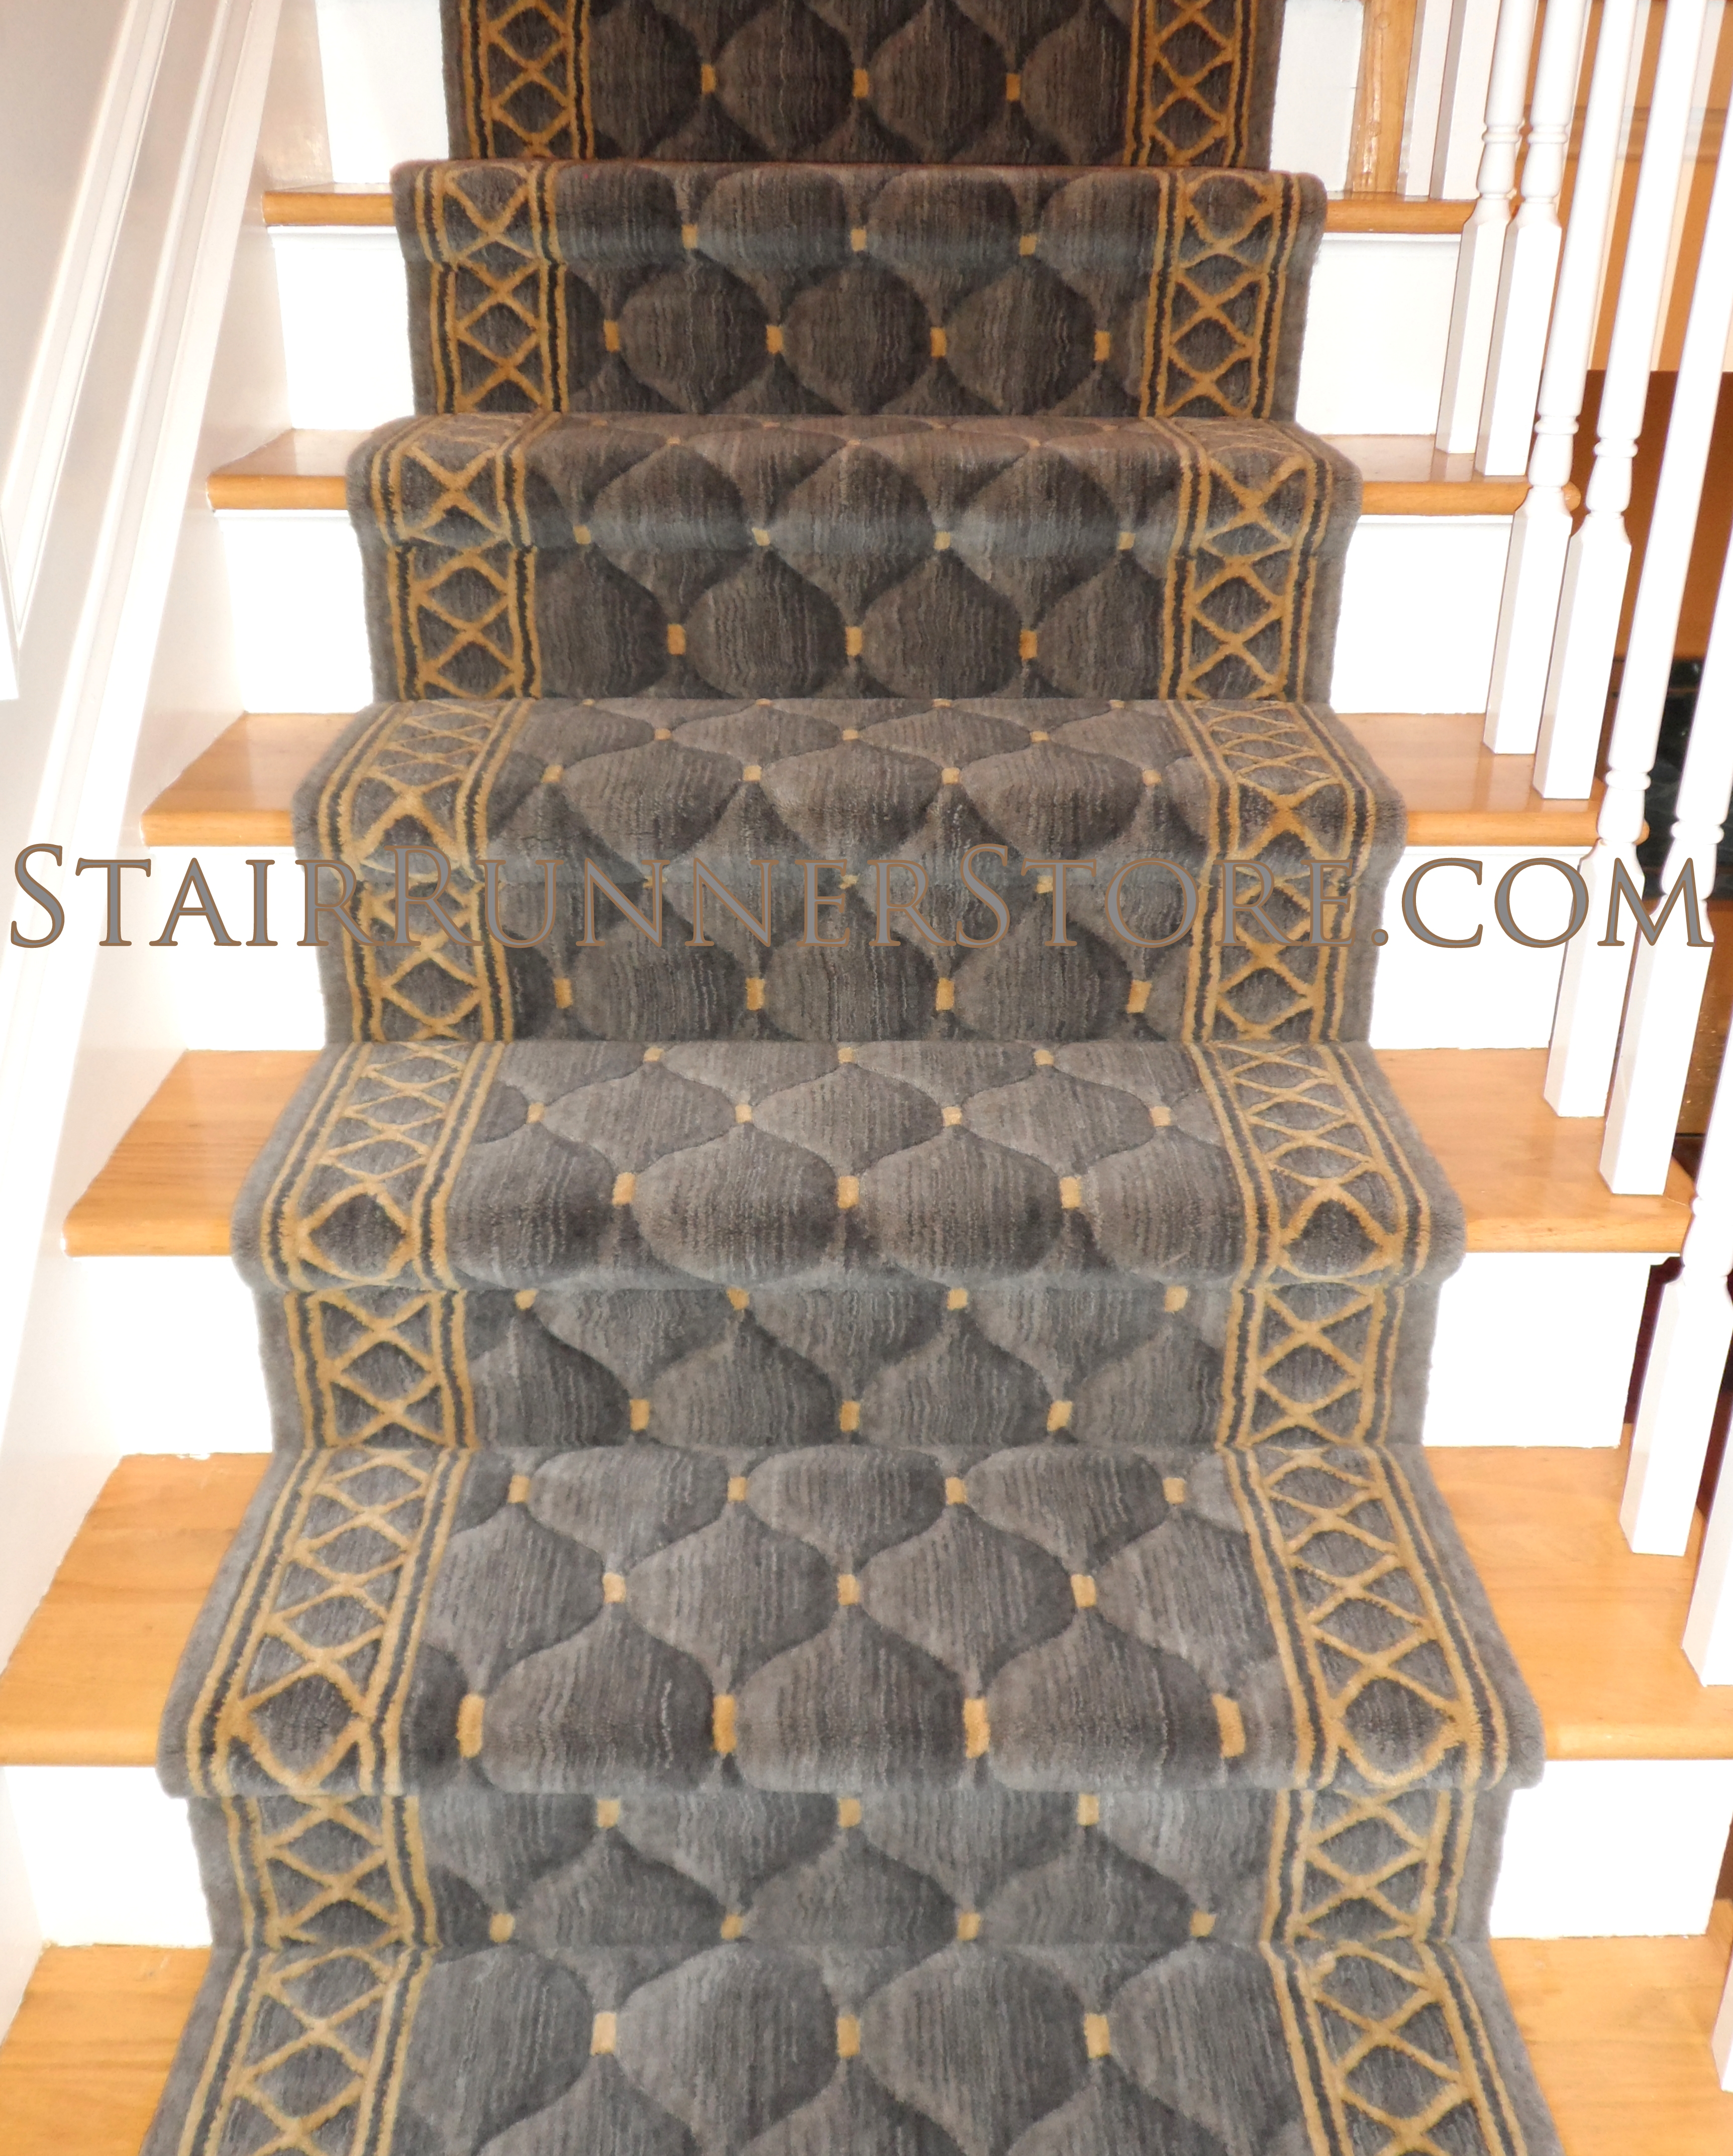 Contemporary Stair Runner Store: Straight Stair Runner Installations • Stair Runner Store Blog